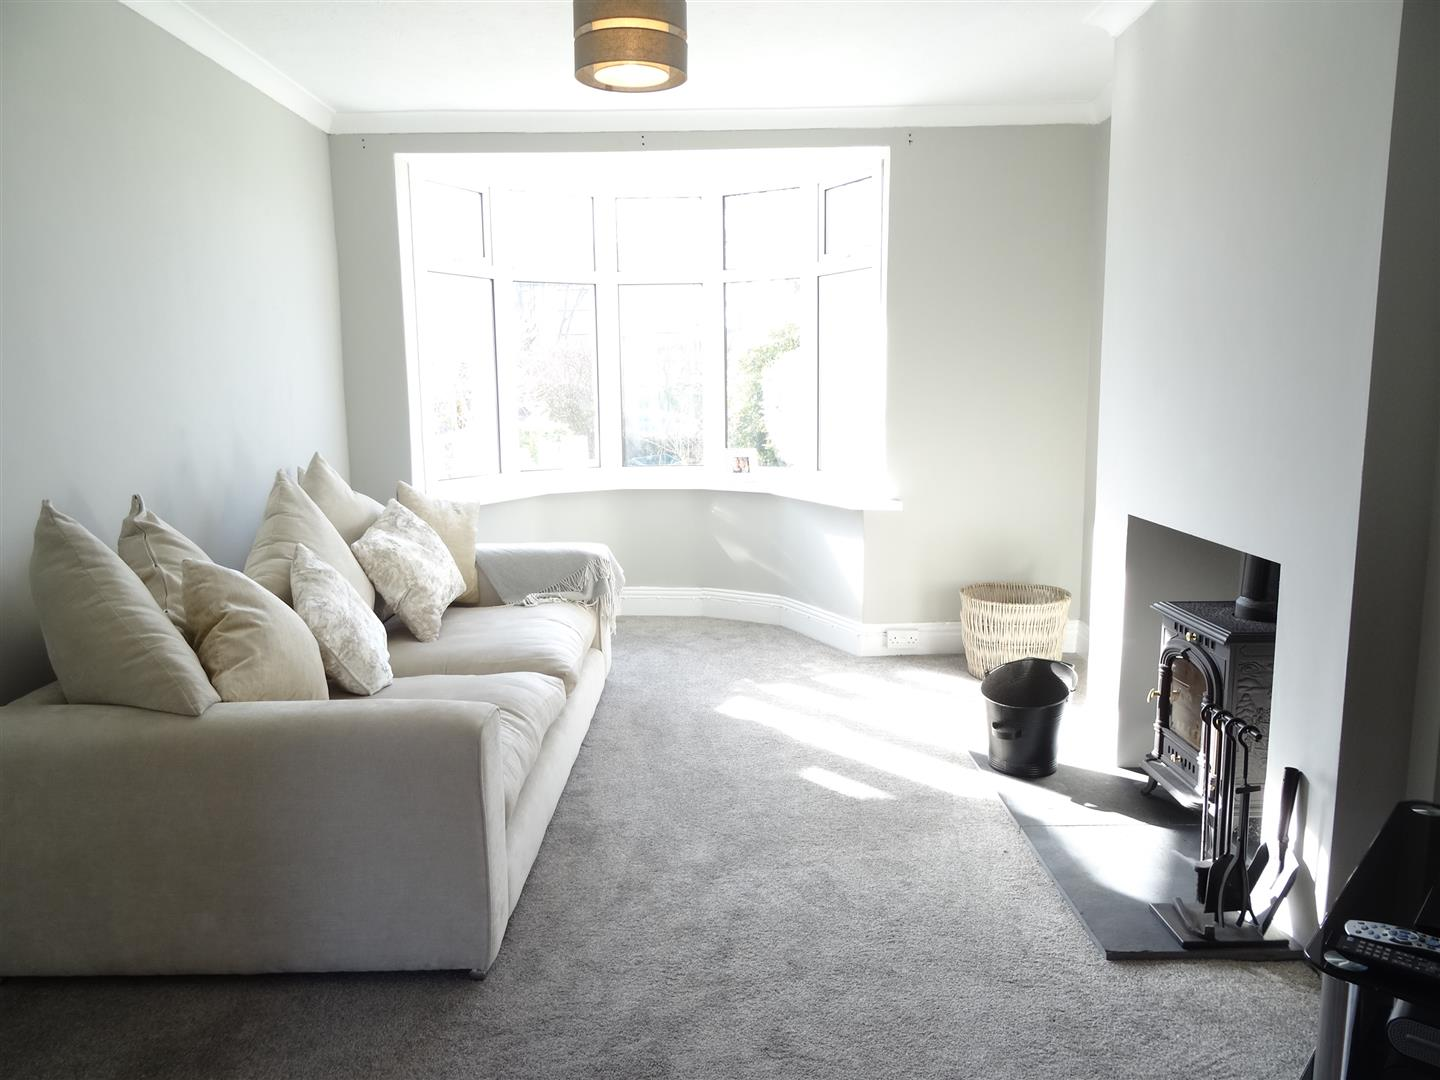 2 Bedrooms House - Semi-Detached For Sale Sunny Croft, 3 Rectory Road Brampton